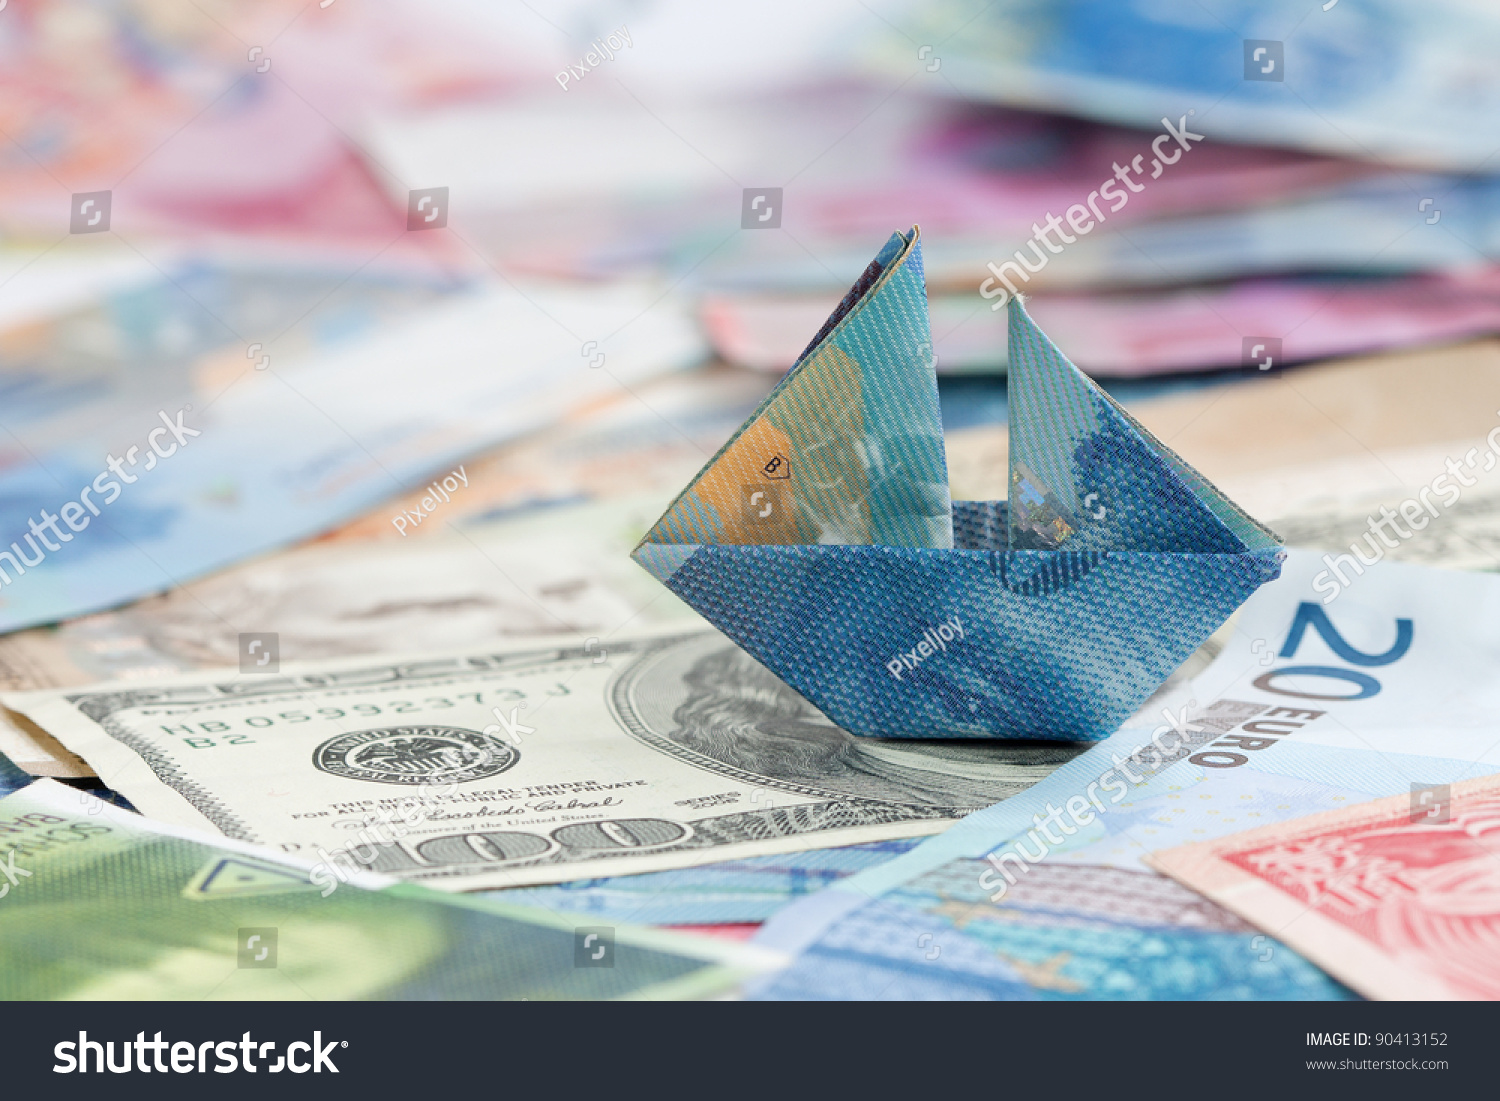 Symbol of france currency gallery symbol and sign ideas swiss france folded boat on world stock photo 90413152 shutterstock swiss france folded as boat on biocorpaavc